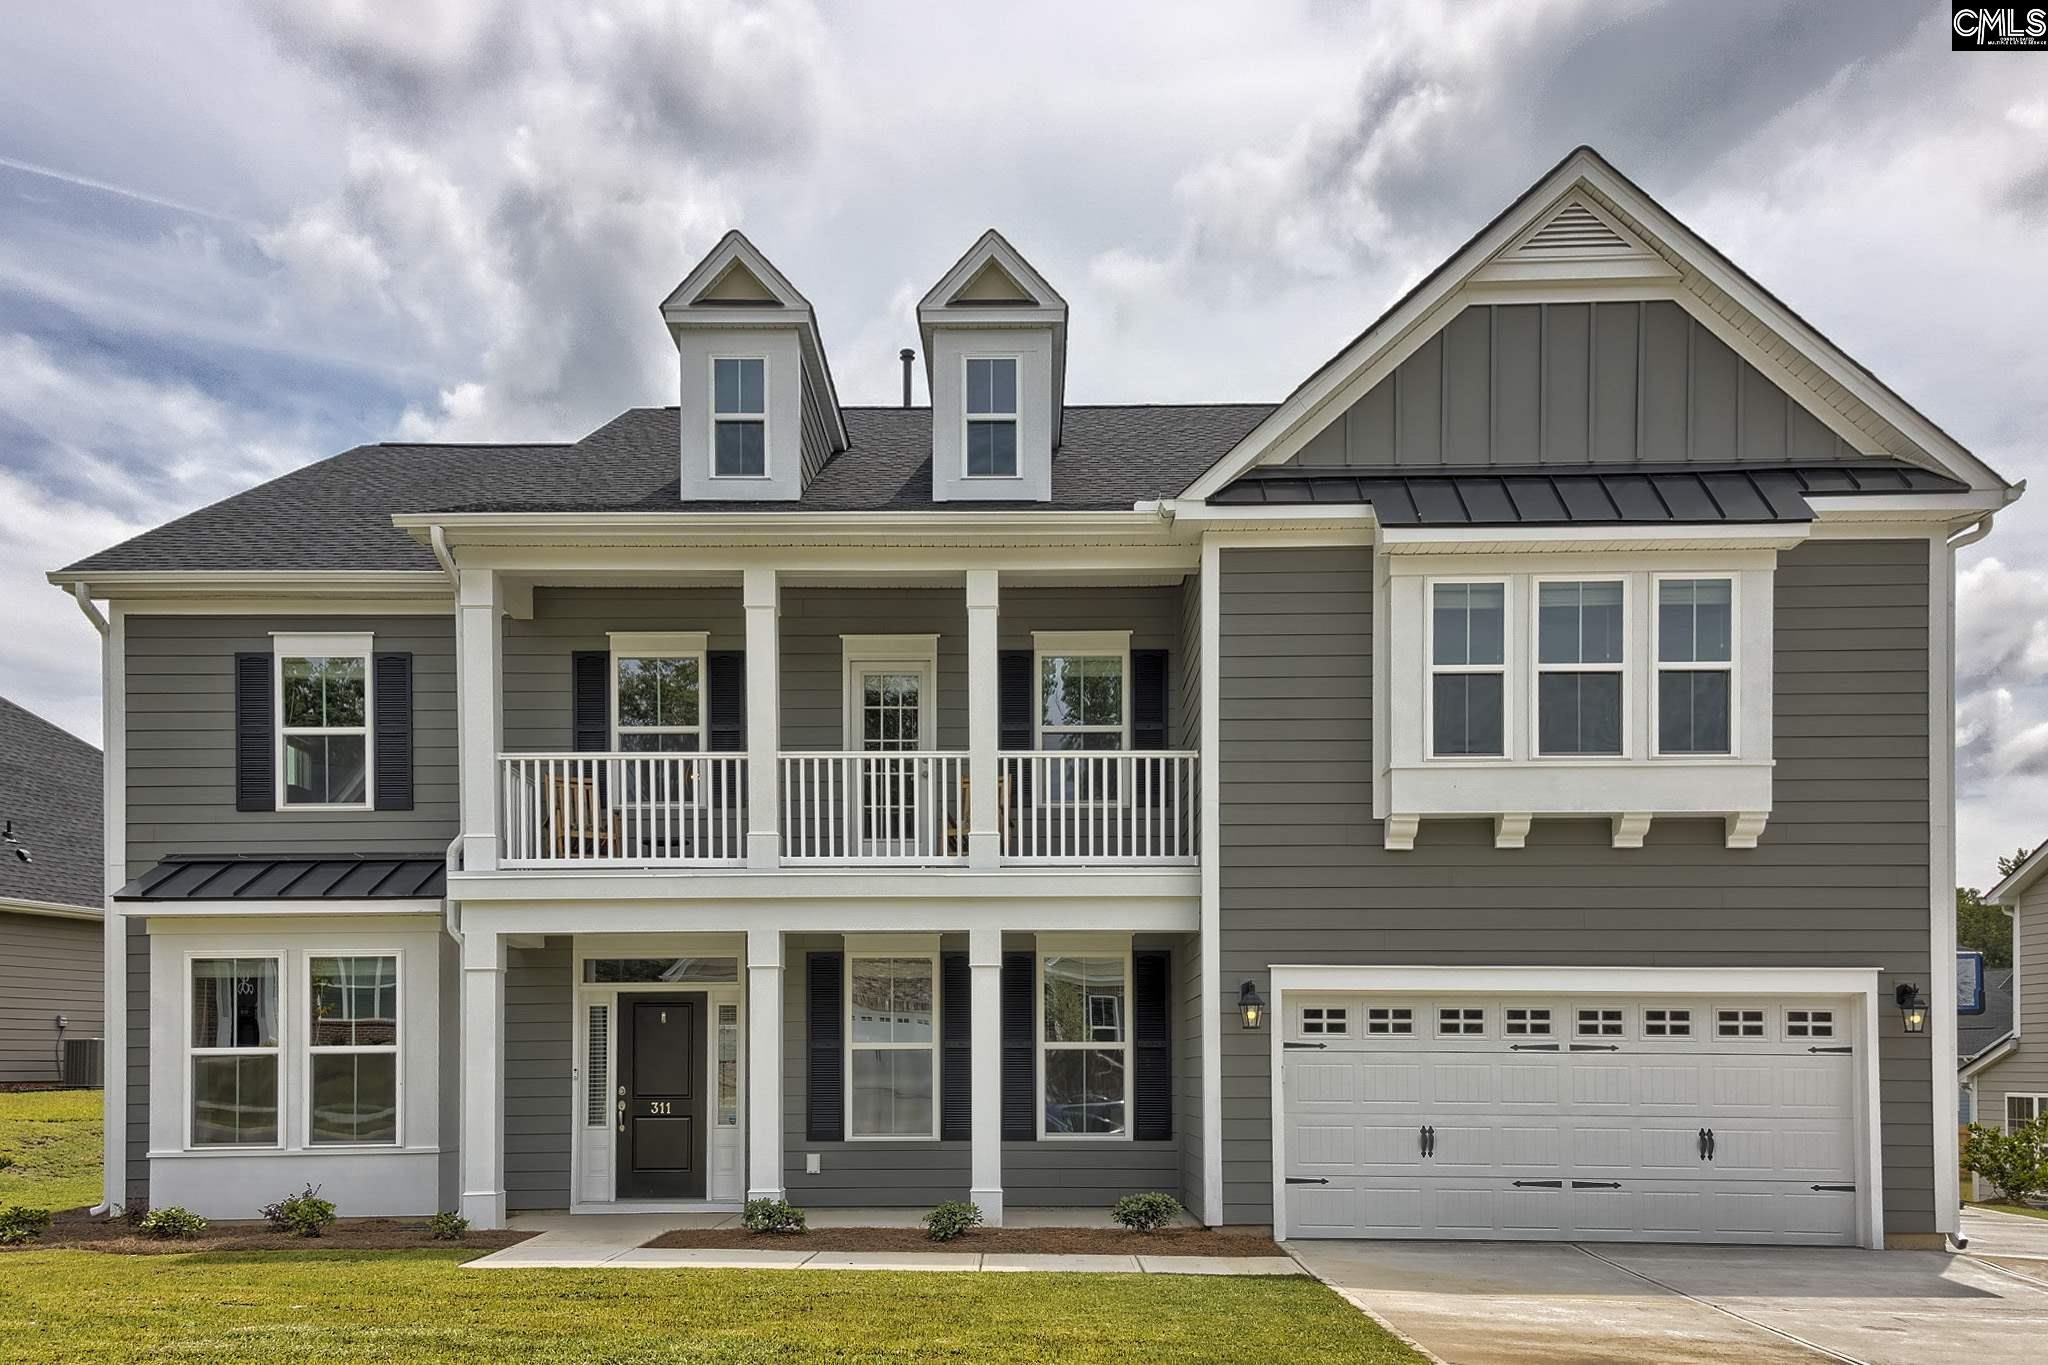 311 Sterling Brook Lexington, SC 29072-8855